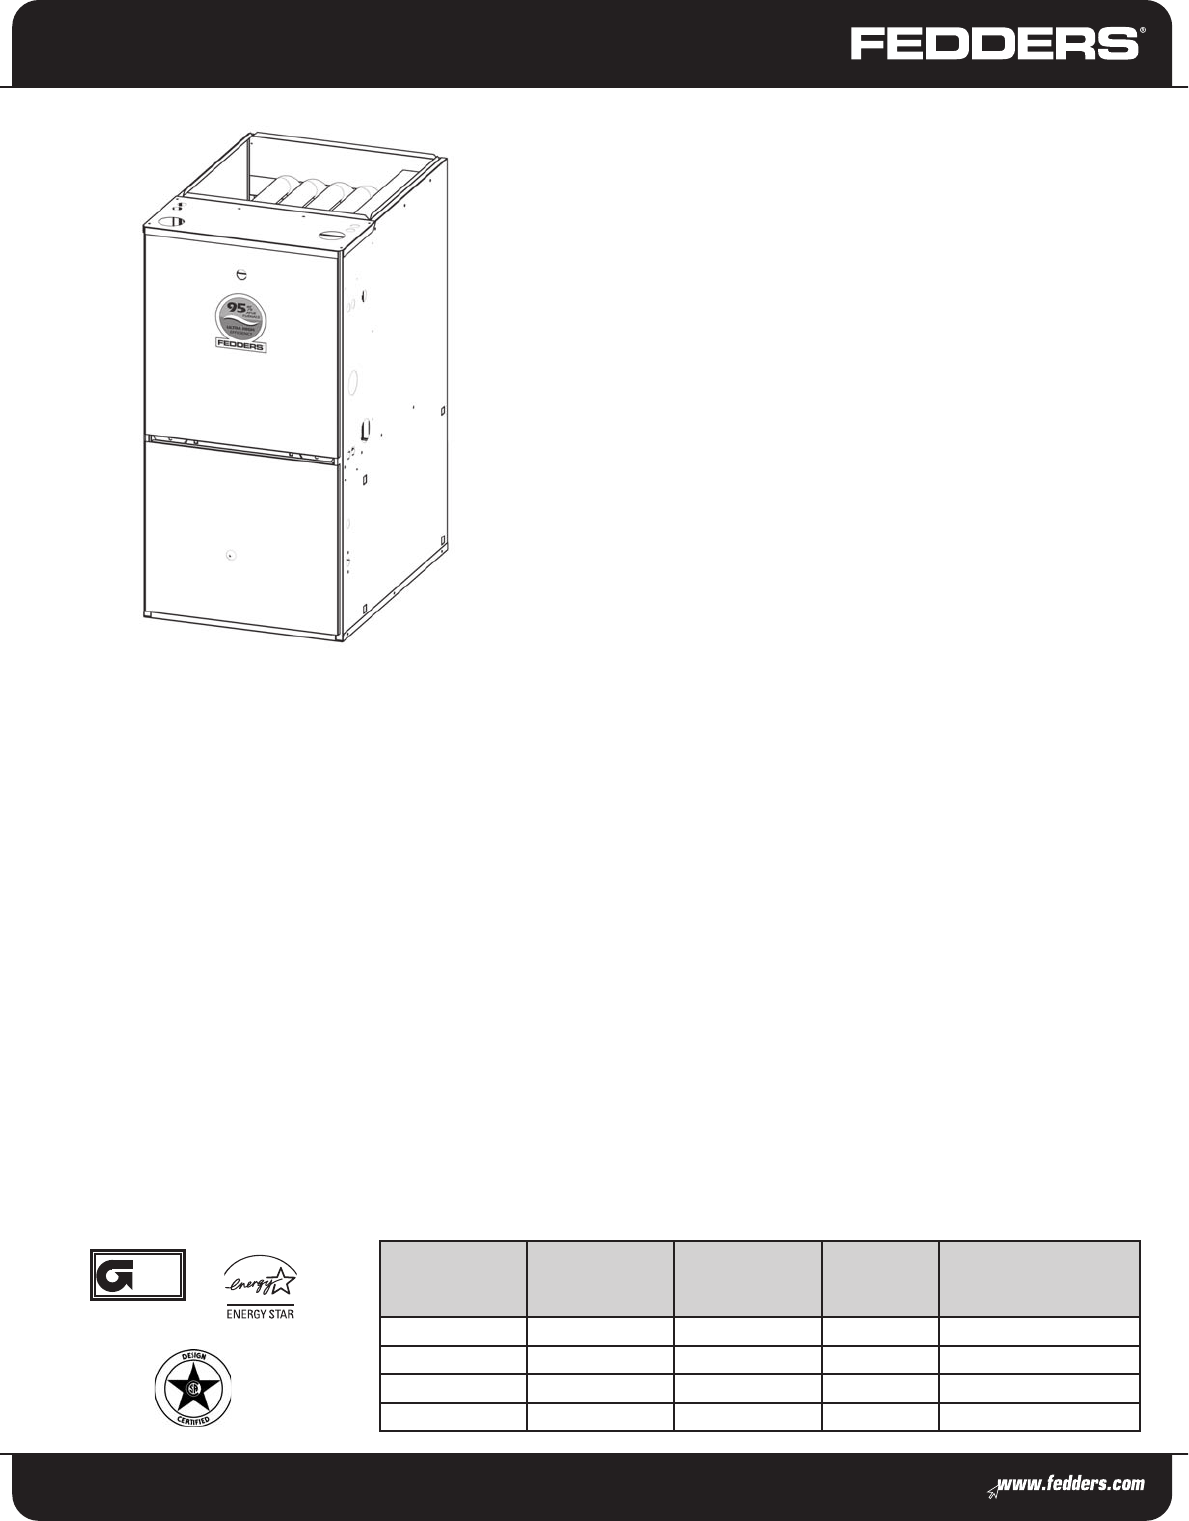 Fedders Furnace Fv95a Series User Guide